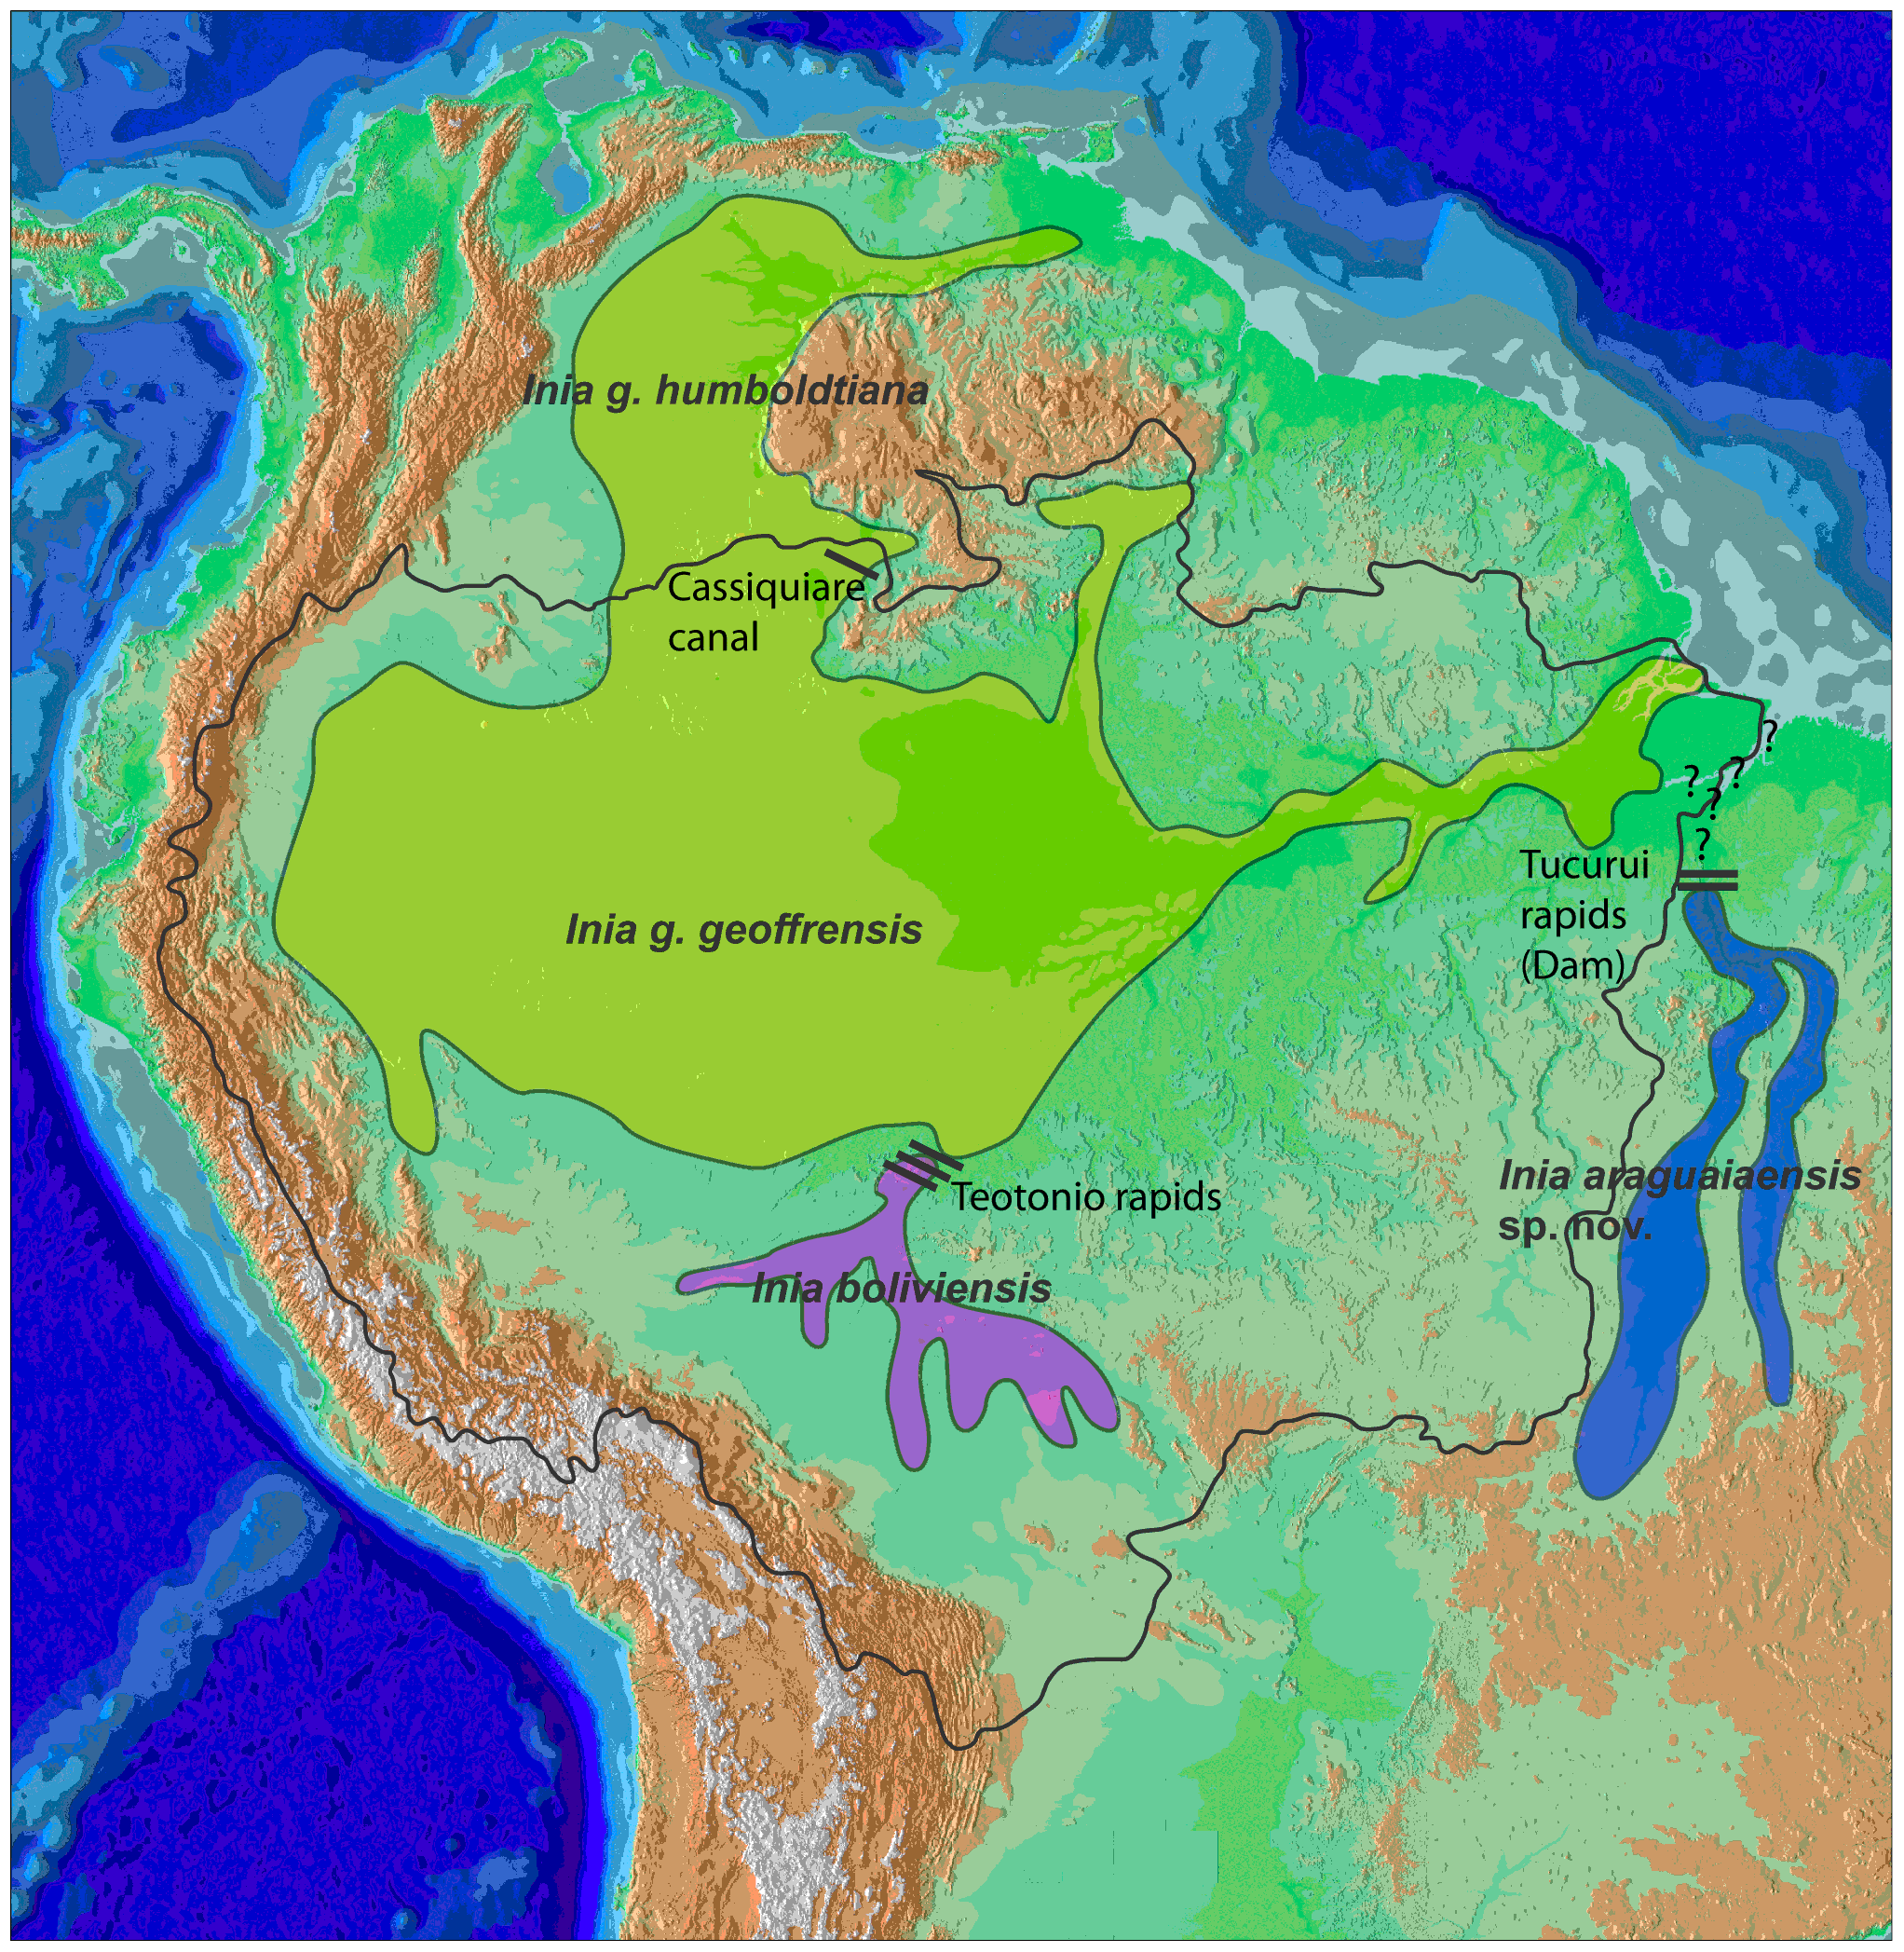 File:Cetacea range map Amazon River Dolphin.PNG - Wikimedia ... on iguazu falls, victoria falls, map of atacama desert, map of sea of cortez, pacific ocean, map of niger river, map of euphrates river, angel falls, map of ganges river, map of yangtze river, rio negro, map of mississippi river, map of hudson river, map of amazon basin, map of parana river, map of ohio river, map of amazon rainforest, amazon rainforest, map of huang he river, atlantic ocean, map of rio de la plata, map of lake titicaca, map of suriname, rio de janeiro, map of yellow river, south america, map of river thames, congo river, map of lake maracaibo, map of indus river, niger river, amazon basin,